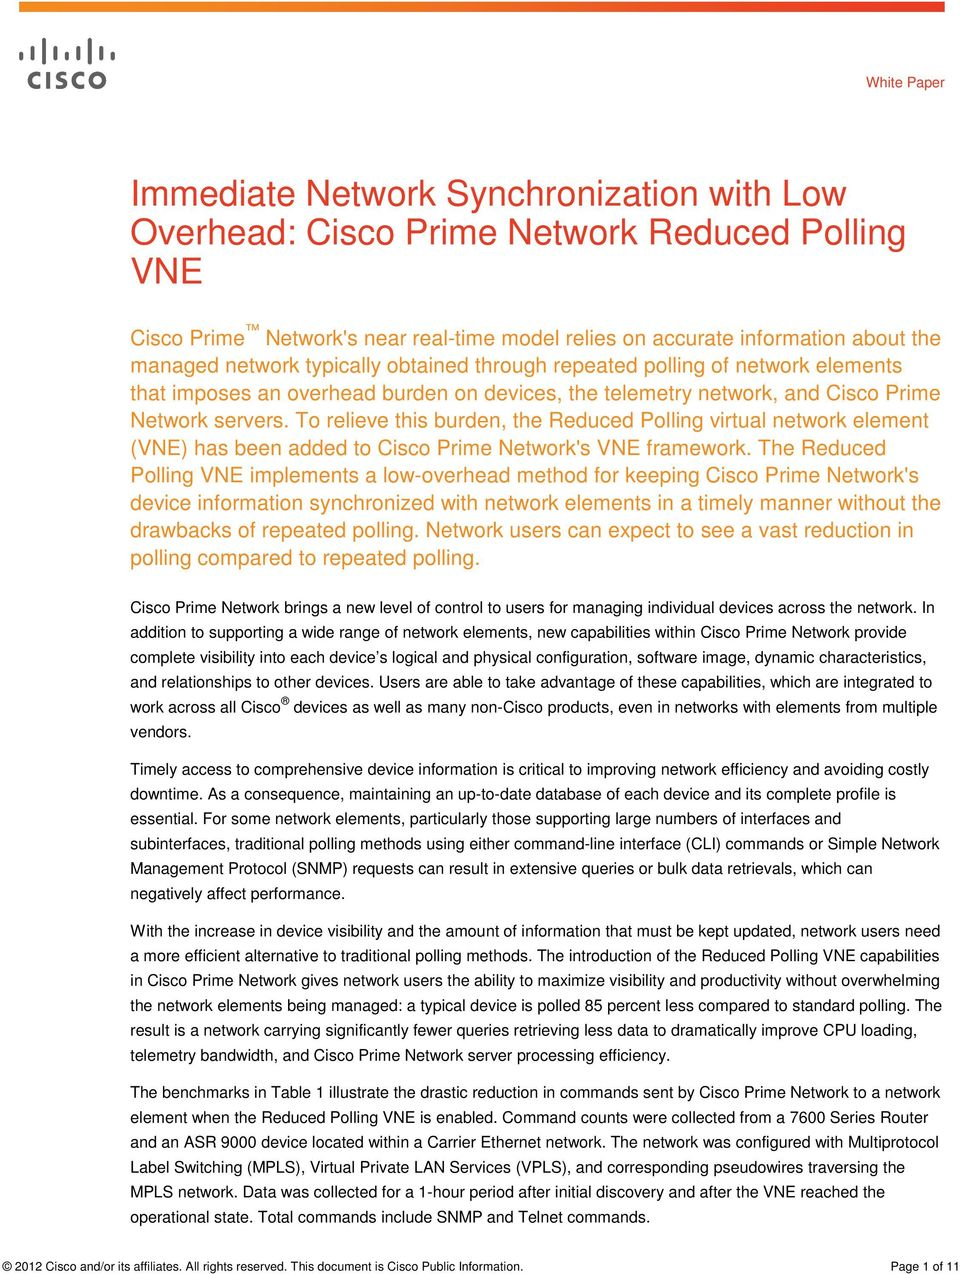 To relieve this burden, the Reduced Polling virtual network element (VNE) has been added to Cisco Prime Network's VNE framework.